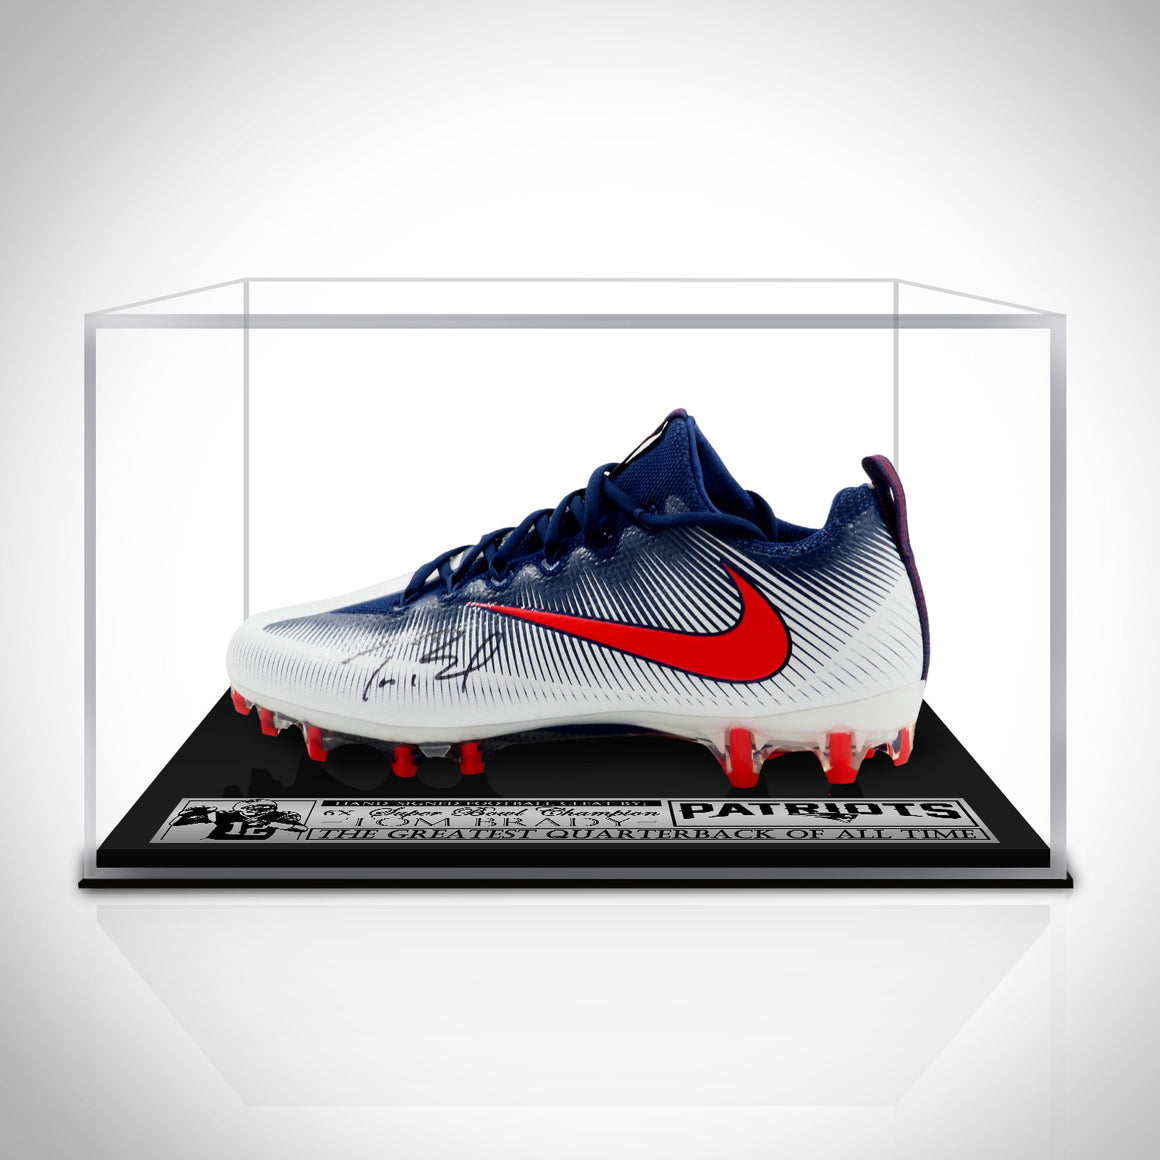 Tom Brady- Hand-Signed Football Cleat Custom Display